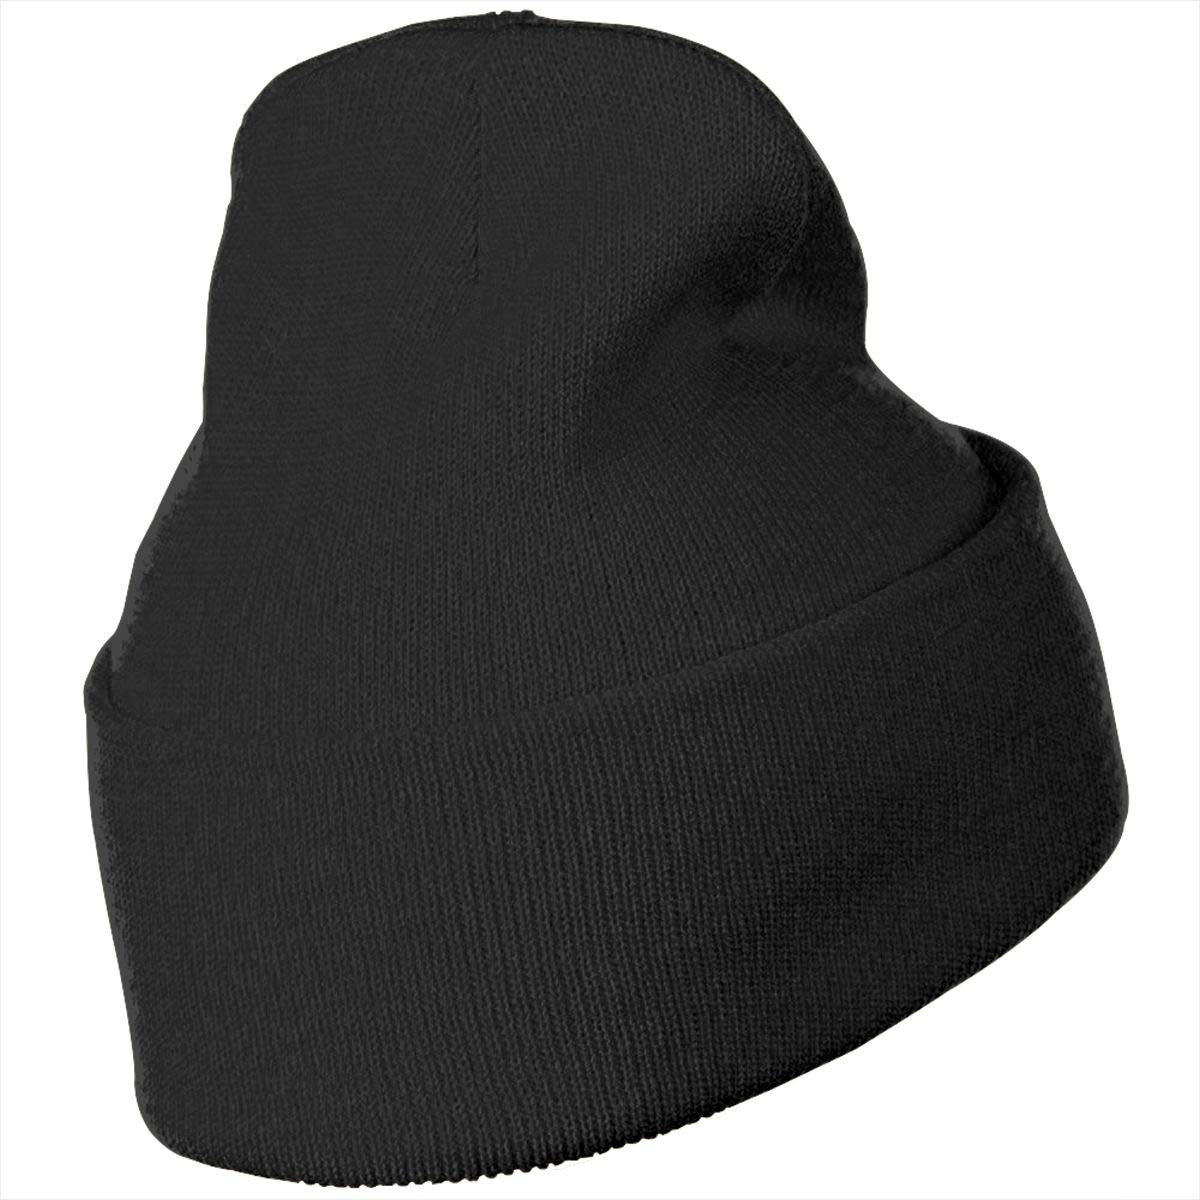 JimHappy Proud Son Vietnam Veteran Winter Warm Hats,Knit Slouchy Thick Skull Cap Black